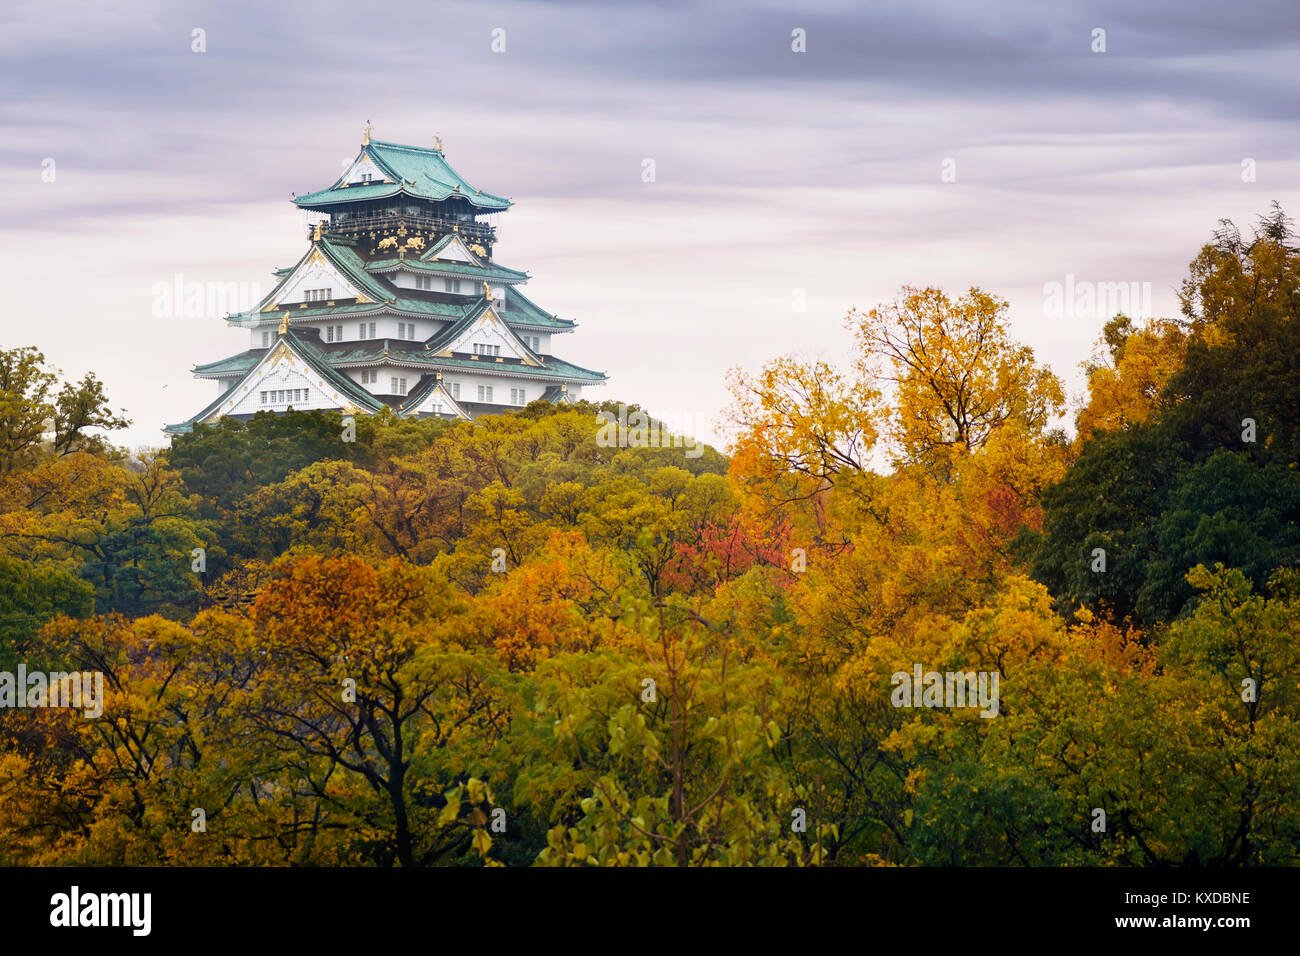 Osaka Castle, Osakajo on a hill surrounded by colorful yellow and red trees in a misty morning autumn scenery - Stock Image